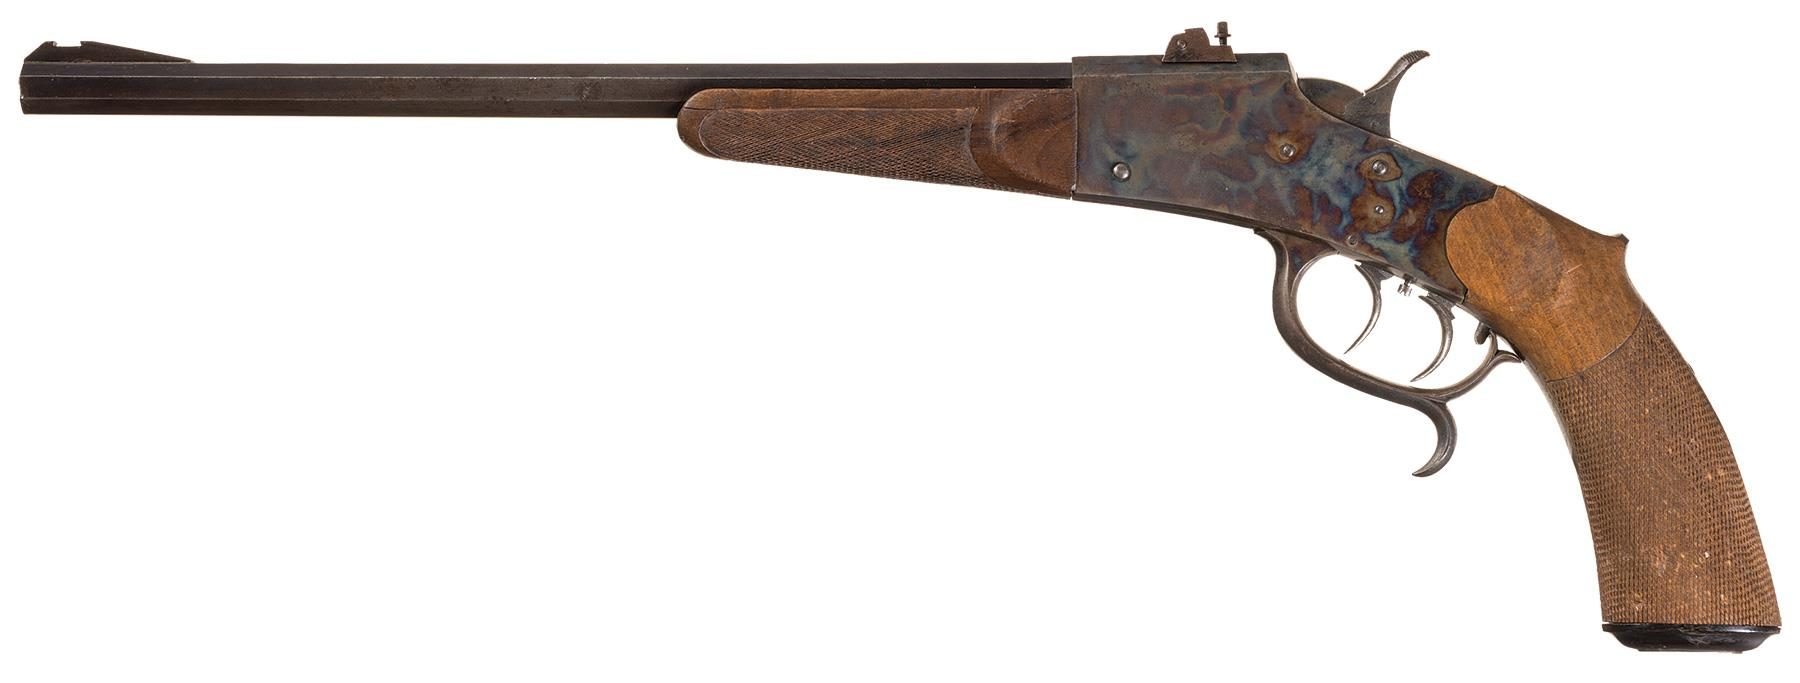 This Buchel Free Pistol is essentially the same as the previous Buchel and was made before the First World War.